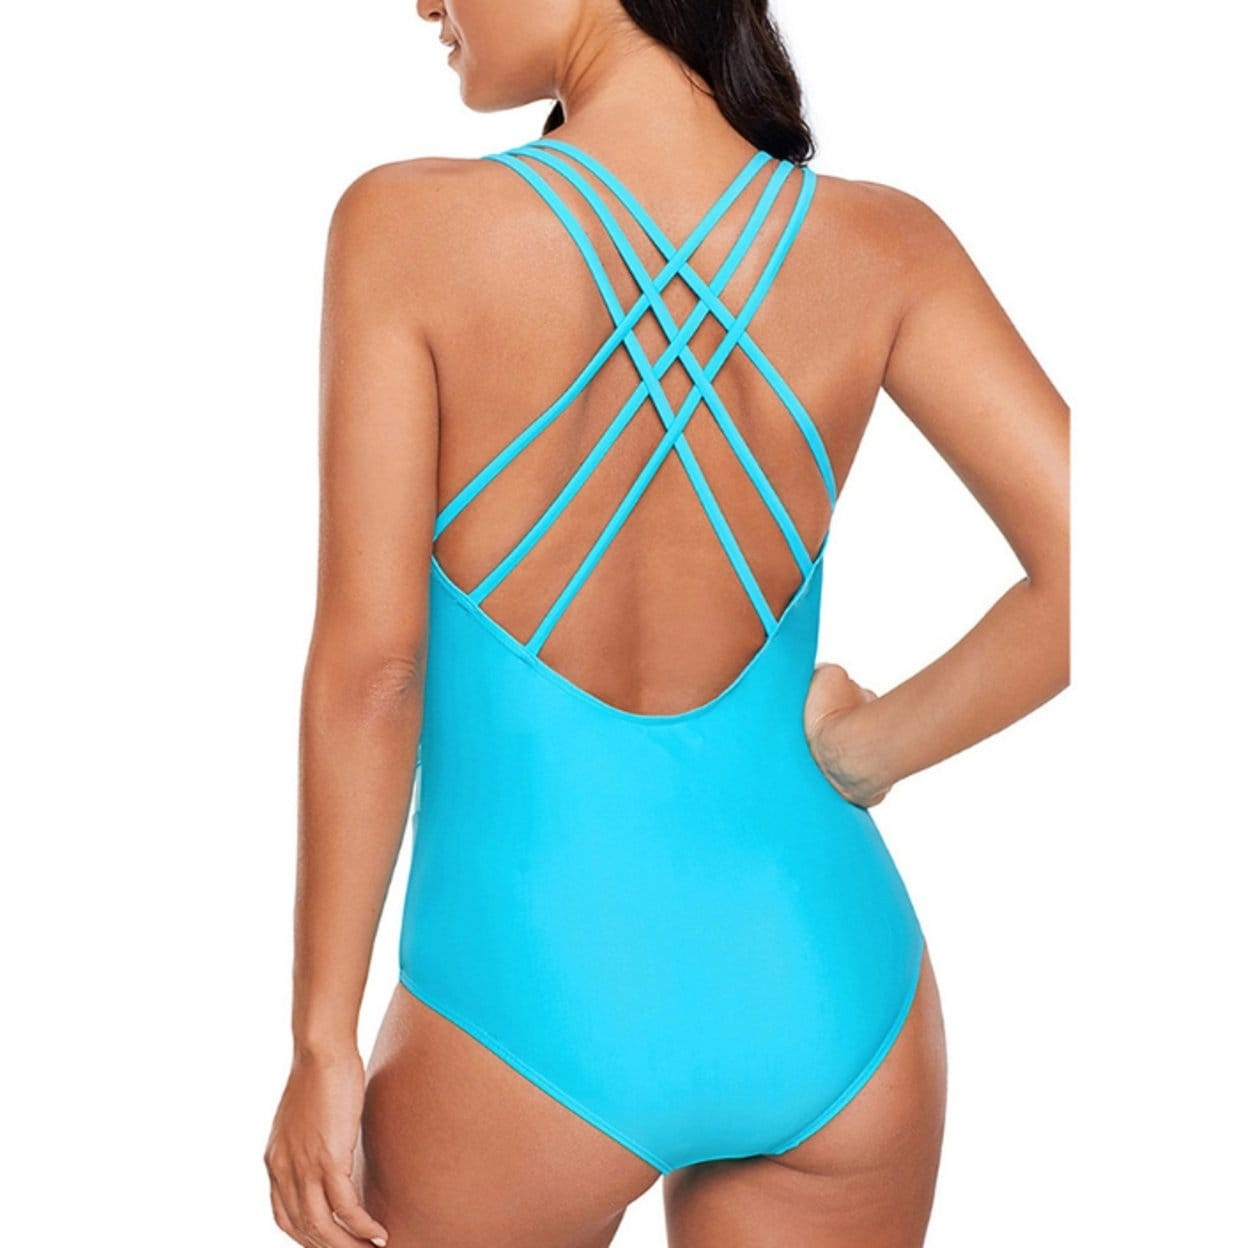 6cc8fa9c831e7 Shop Women's Sexy Plus Size V Neck One Piece Swimsuit Tummy Control Swimwear  Cross Back Bathing Suits - On Sale - Ships To Canada - Overstock - 27517005